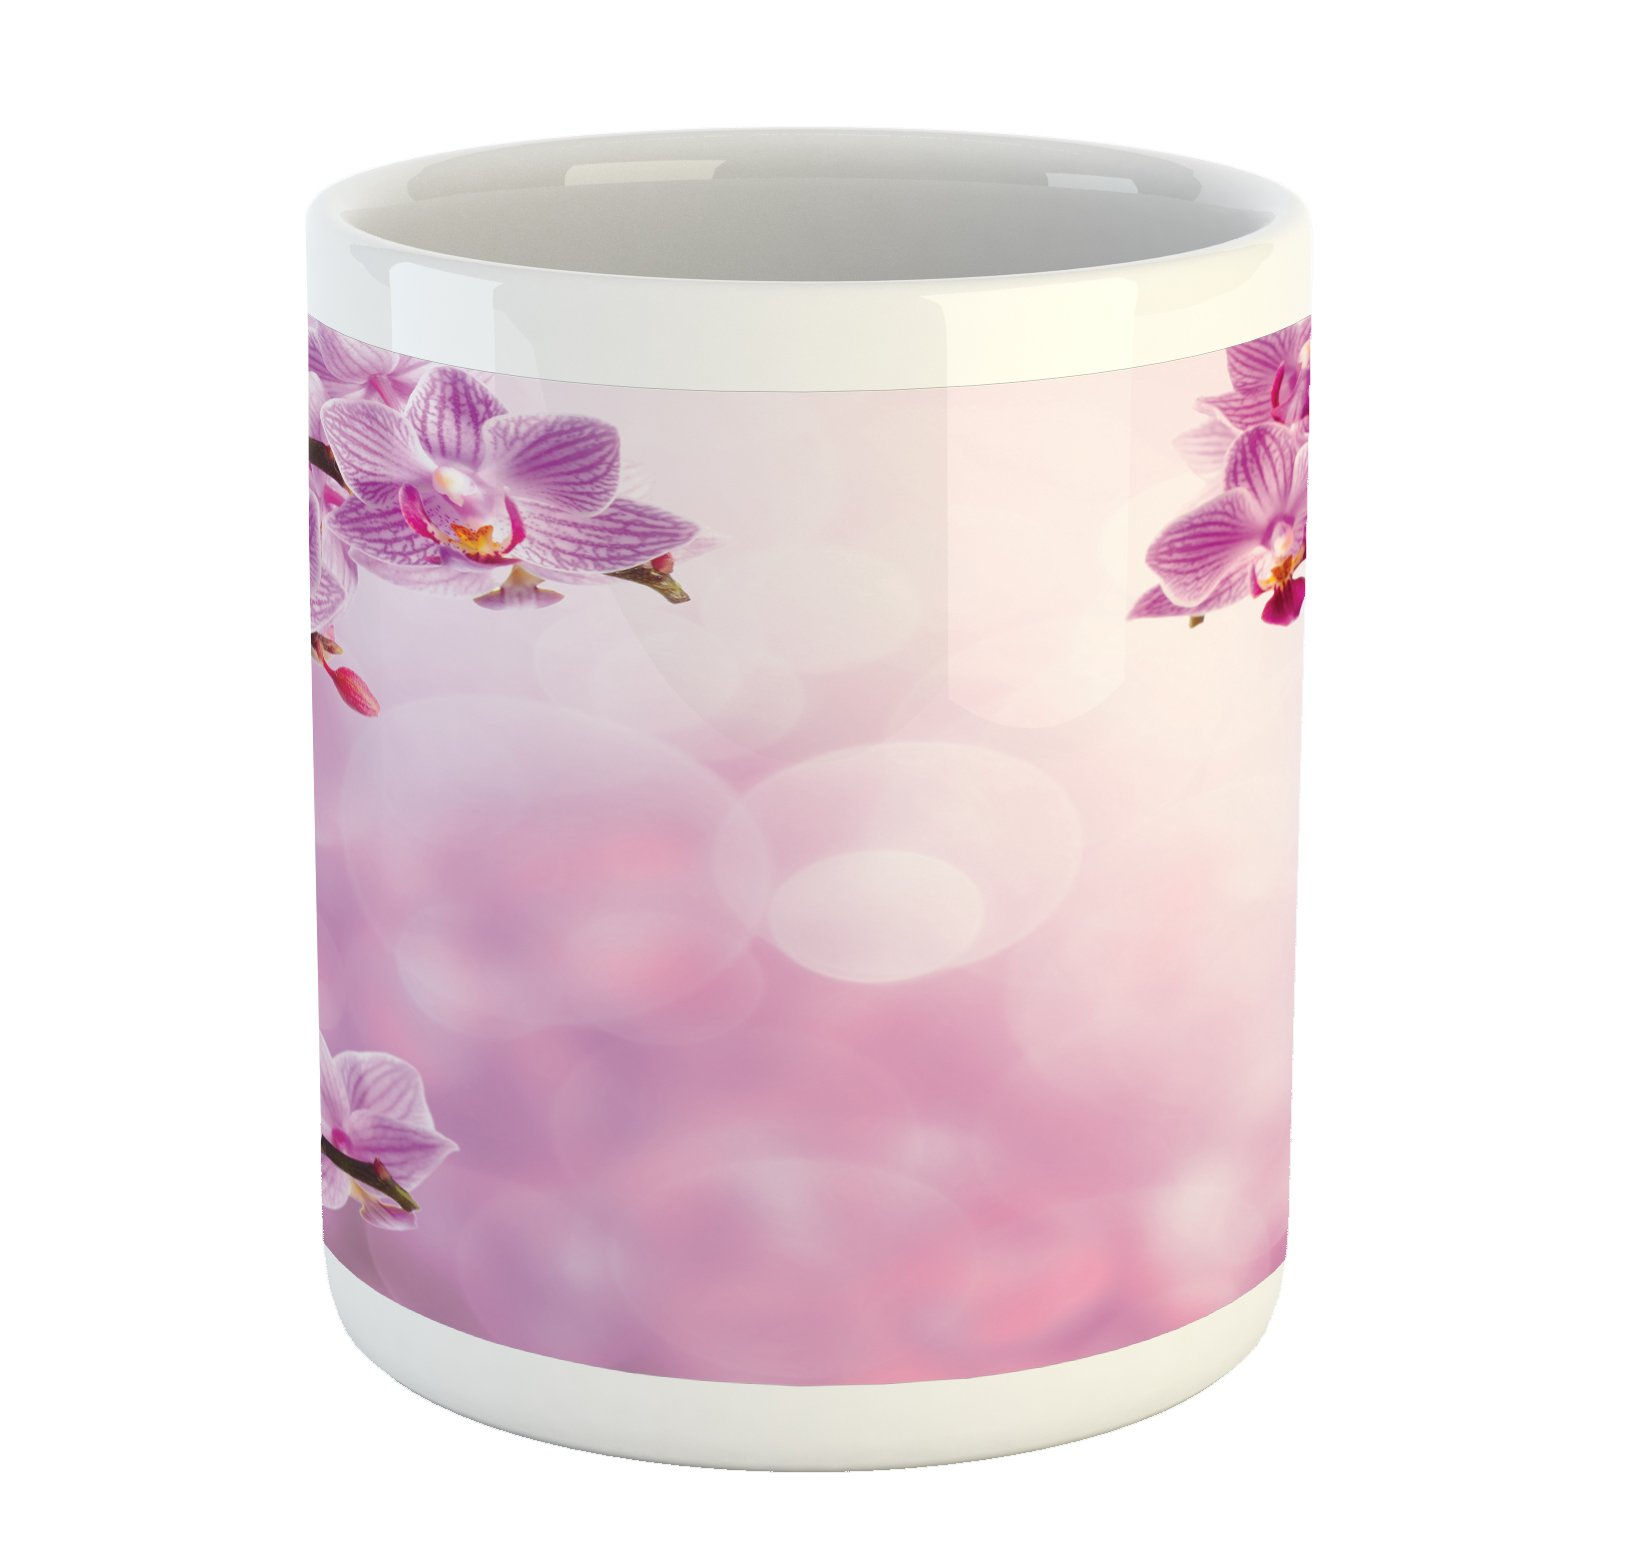 Ambesonne Spa Mug, Orchid Petals in Monochrome Design Bouquet Spring Bloom Seedling Growth Peaceful Nature Print, Printed Ceramic Coffee Mug Water Tea Drinks Cup, Pink